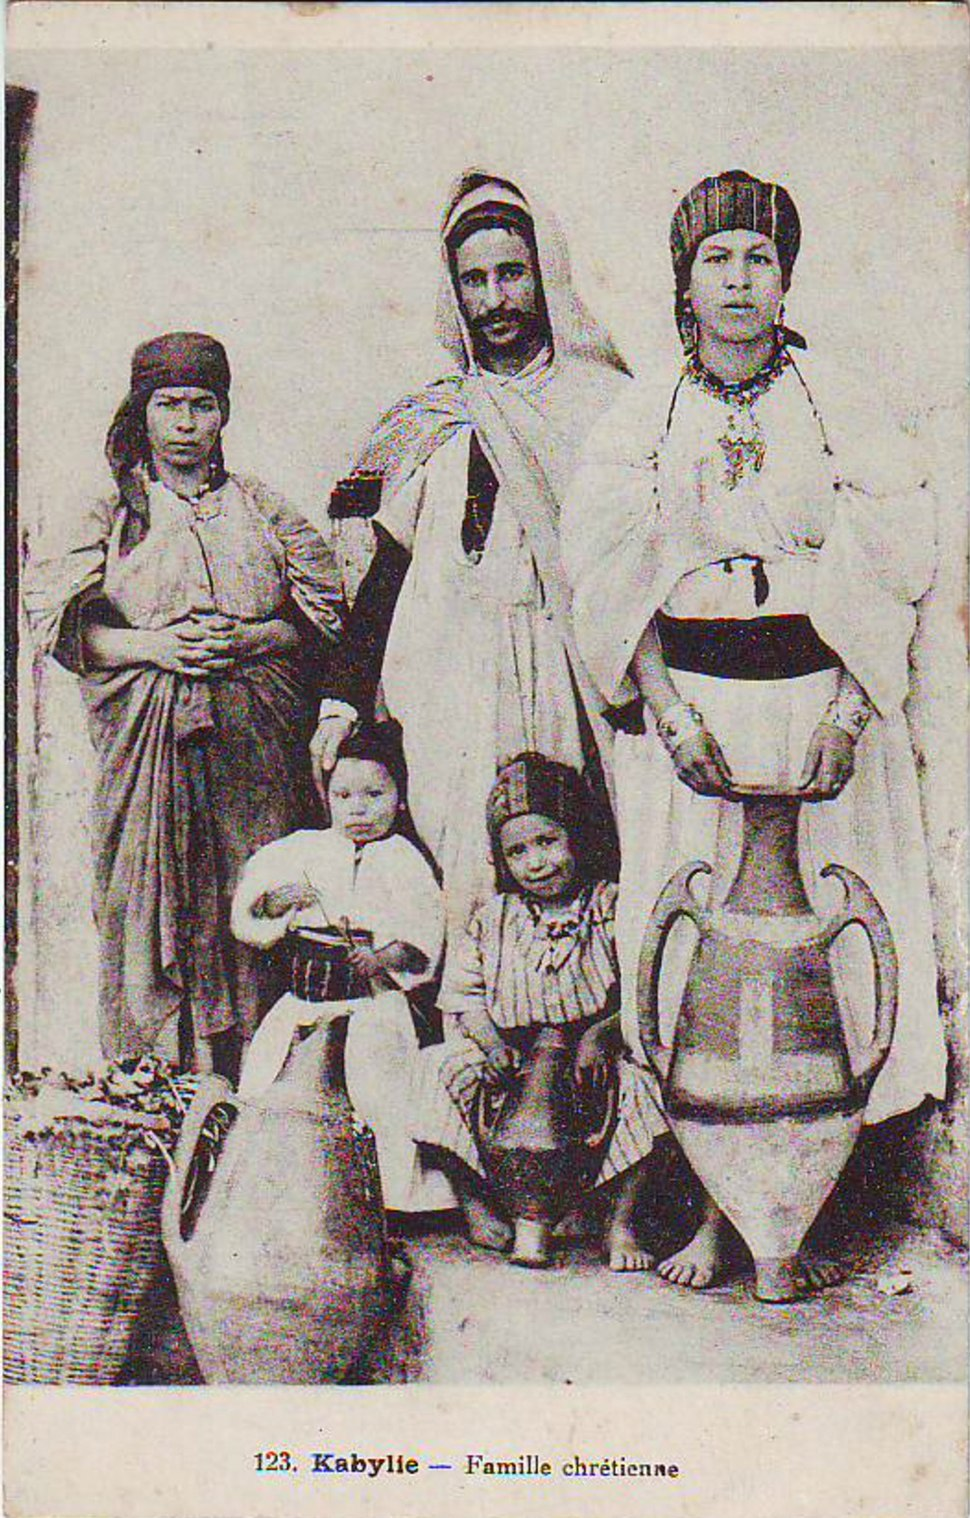 Kabylie Christian family